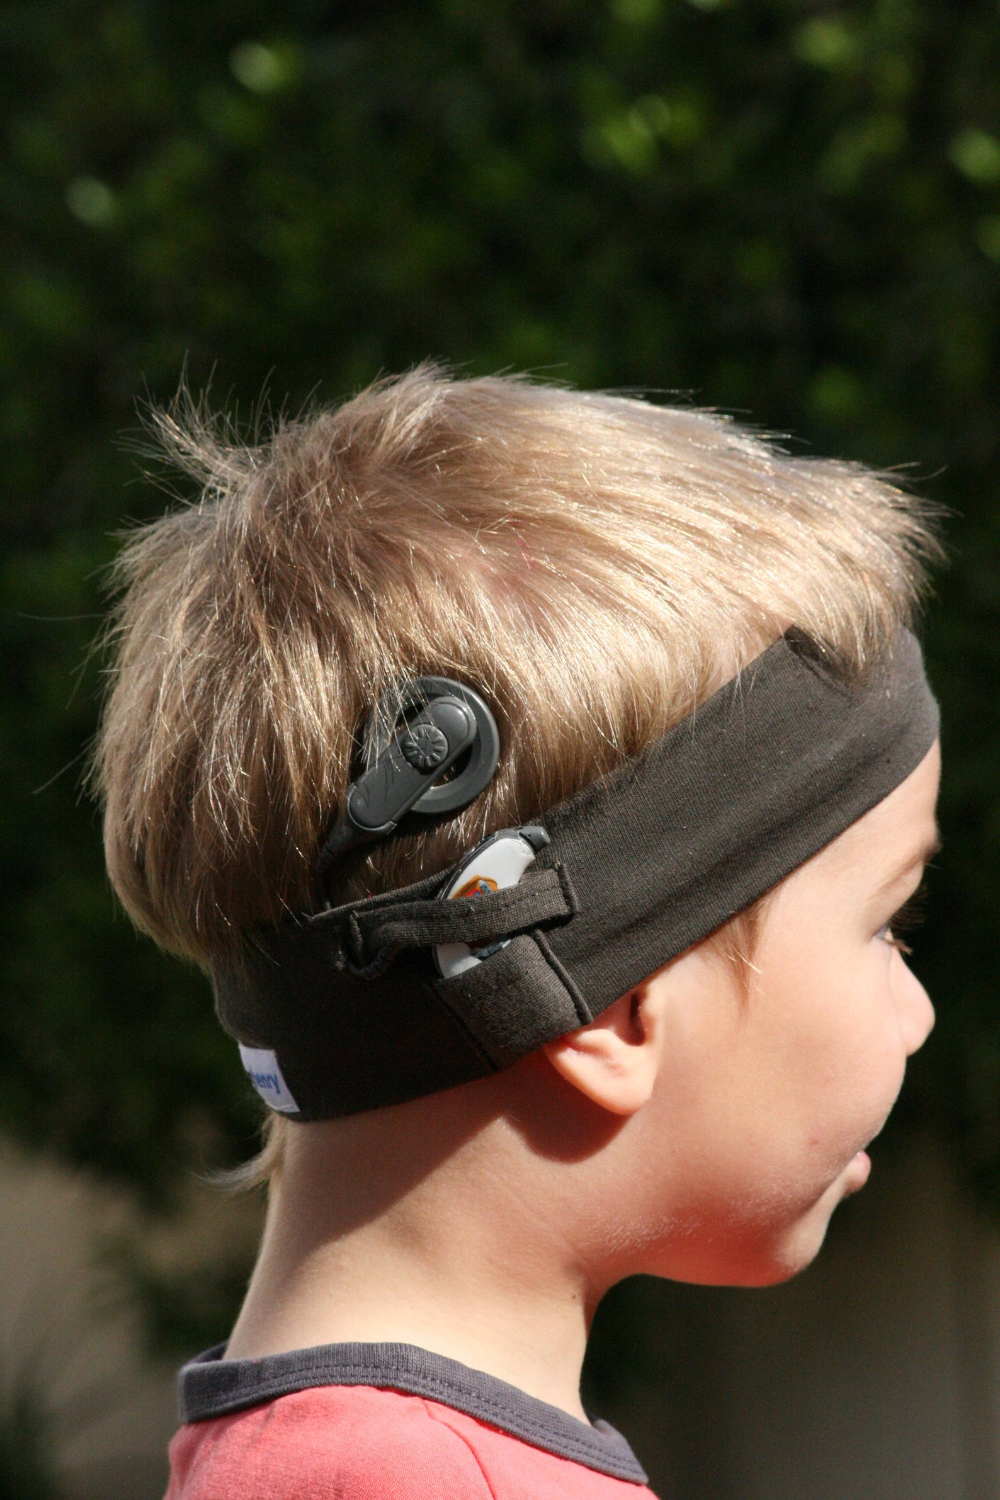 STANDARD hearinghenry Cochlear Implant Headband (Age 6 mon- 6 yrs)